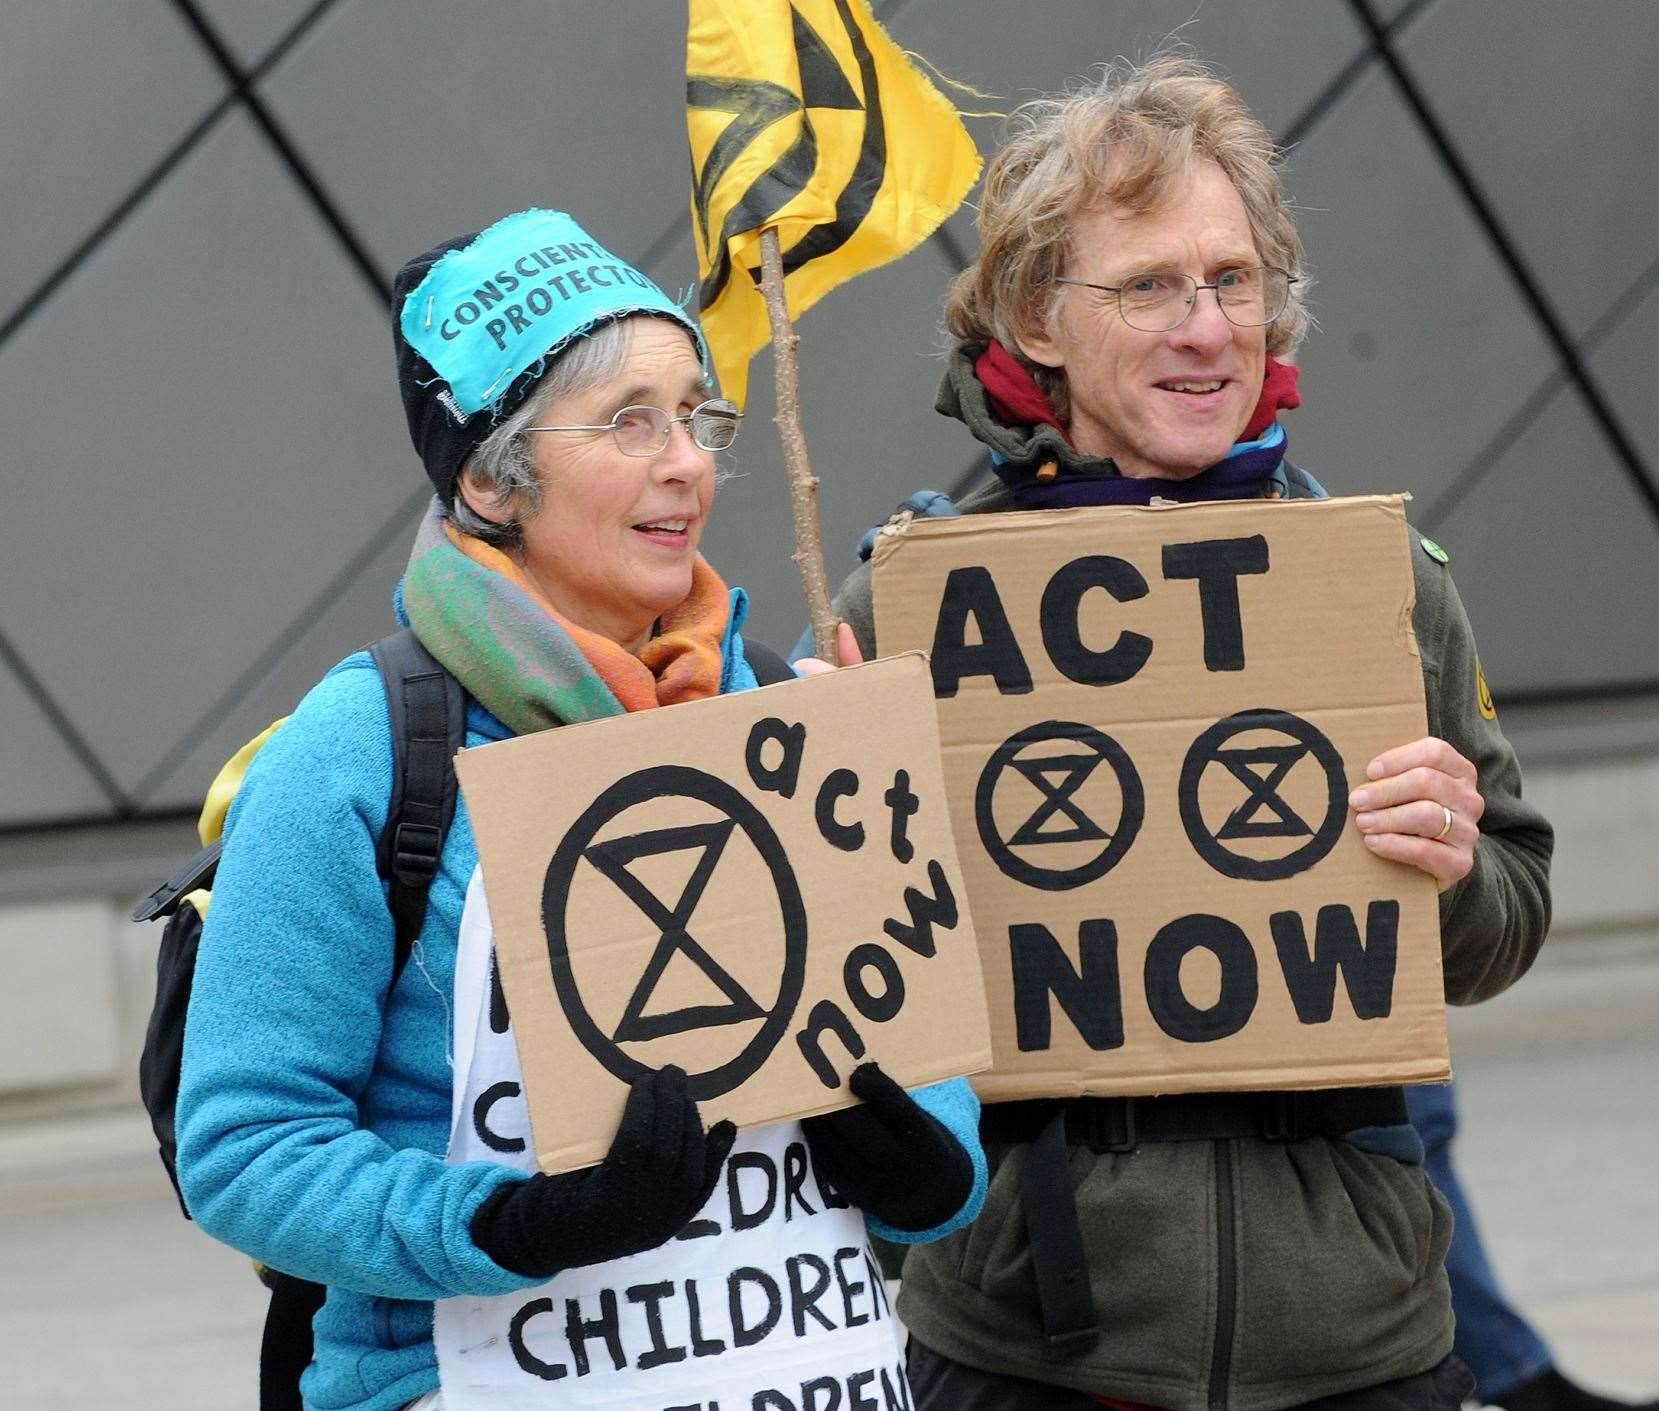 Extinction Rebellion is a non-violent protest organisation which is trying to get the government to do something about climate change